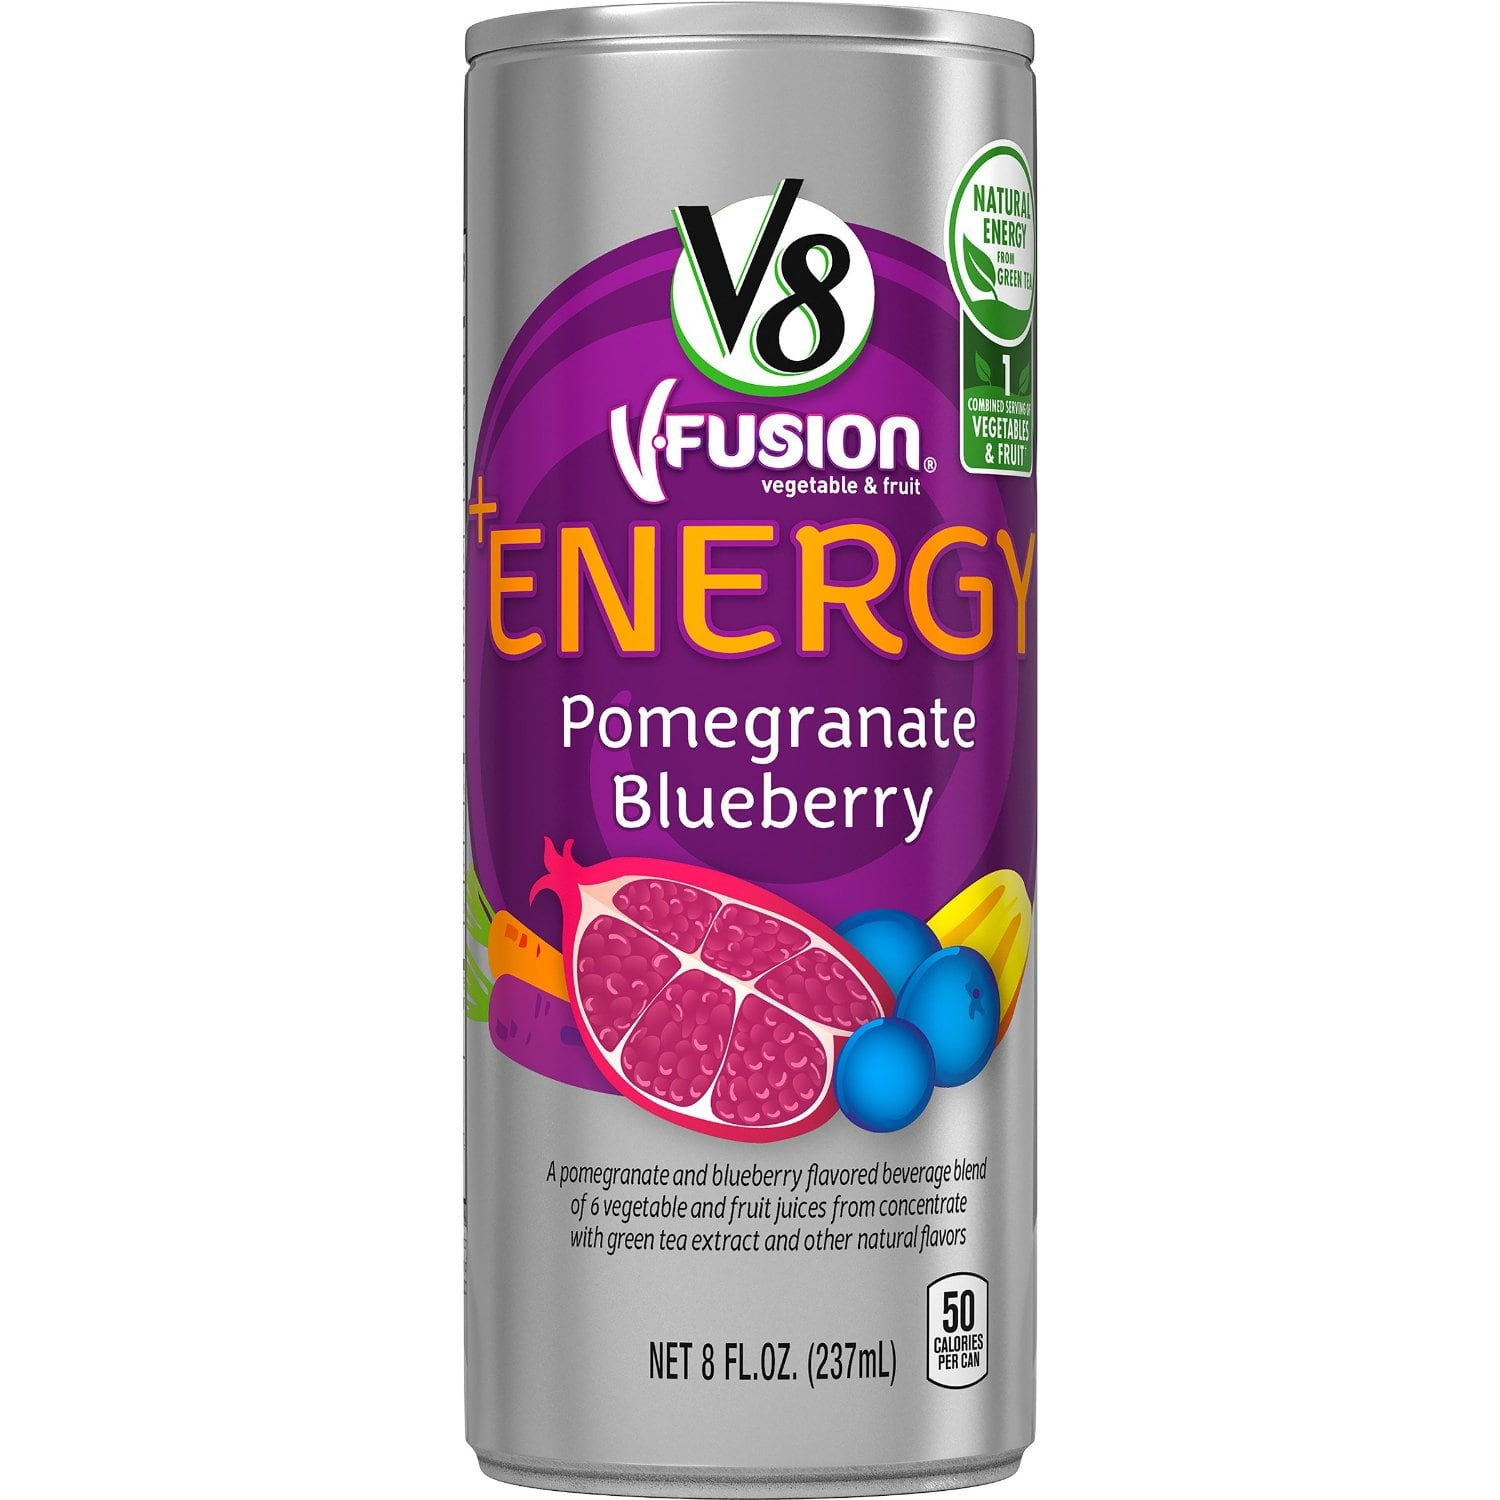 Prime Members: 24-Pack of 8oz V8 V-Fusion +Energy Drink (Various Flavors) $8.75 + Free Shipping